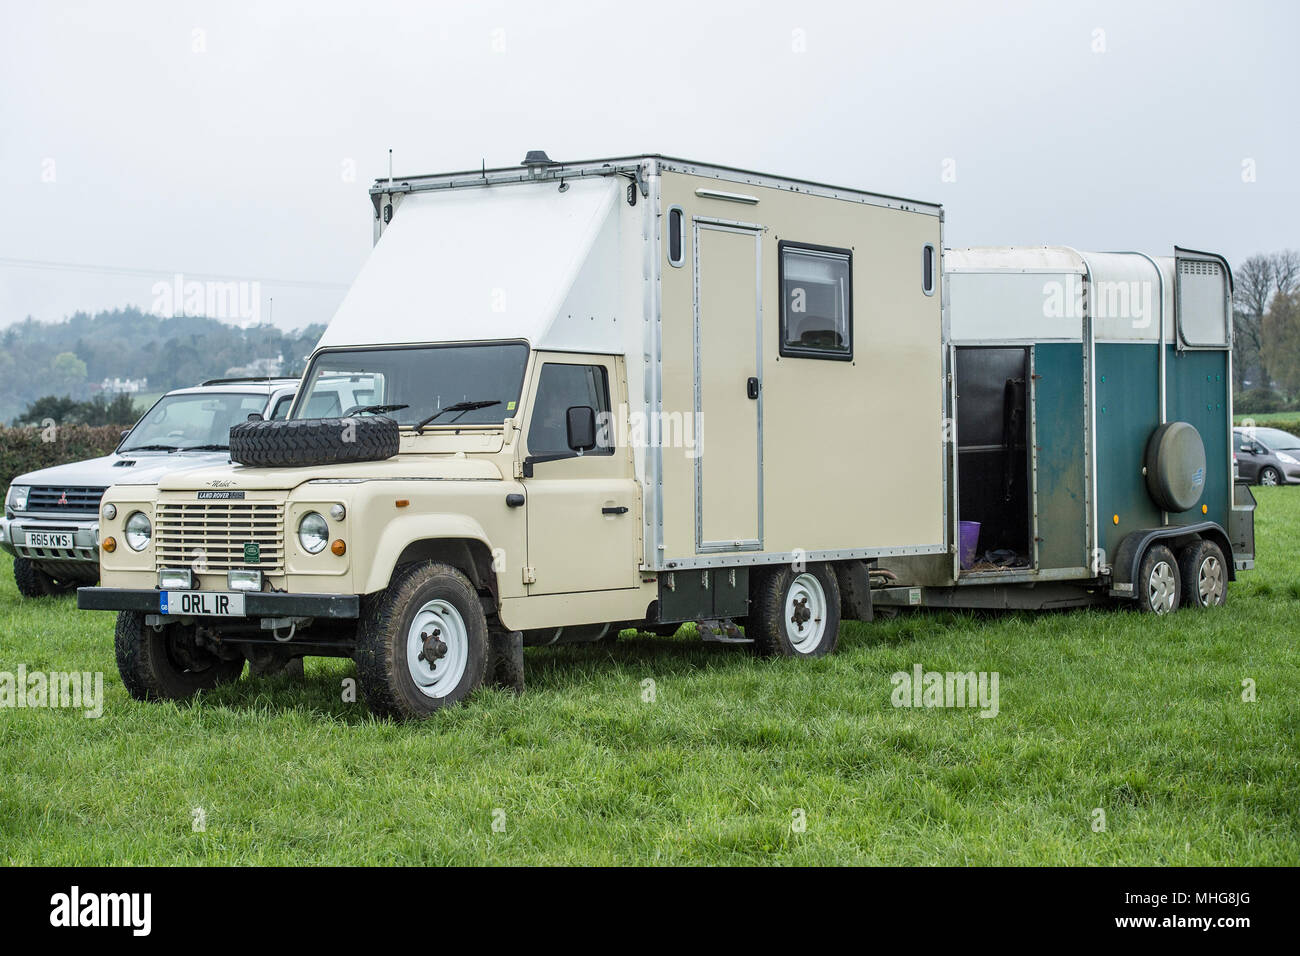 converted landrover campervan - Stock Image